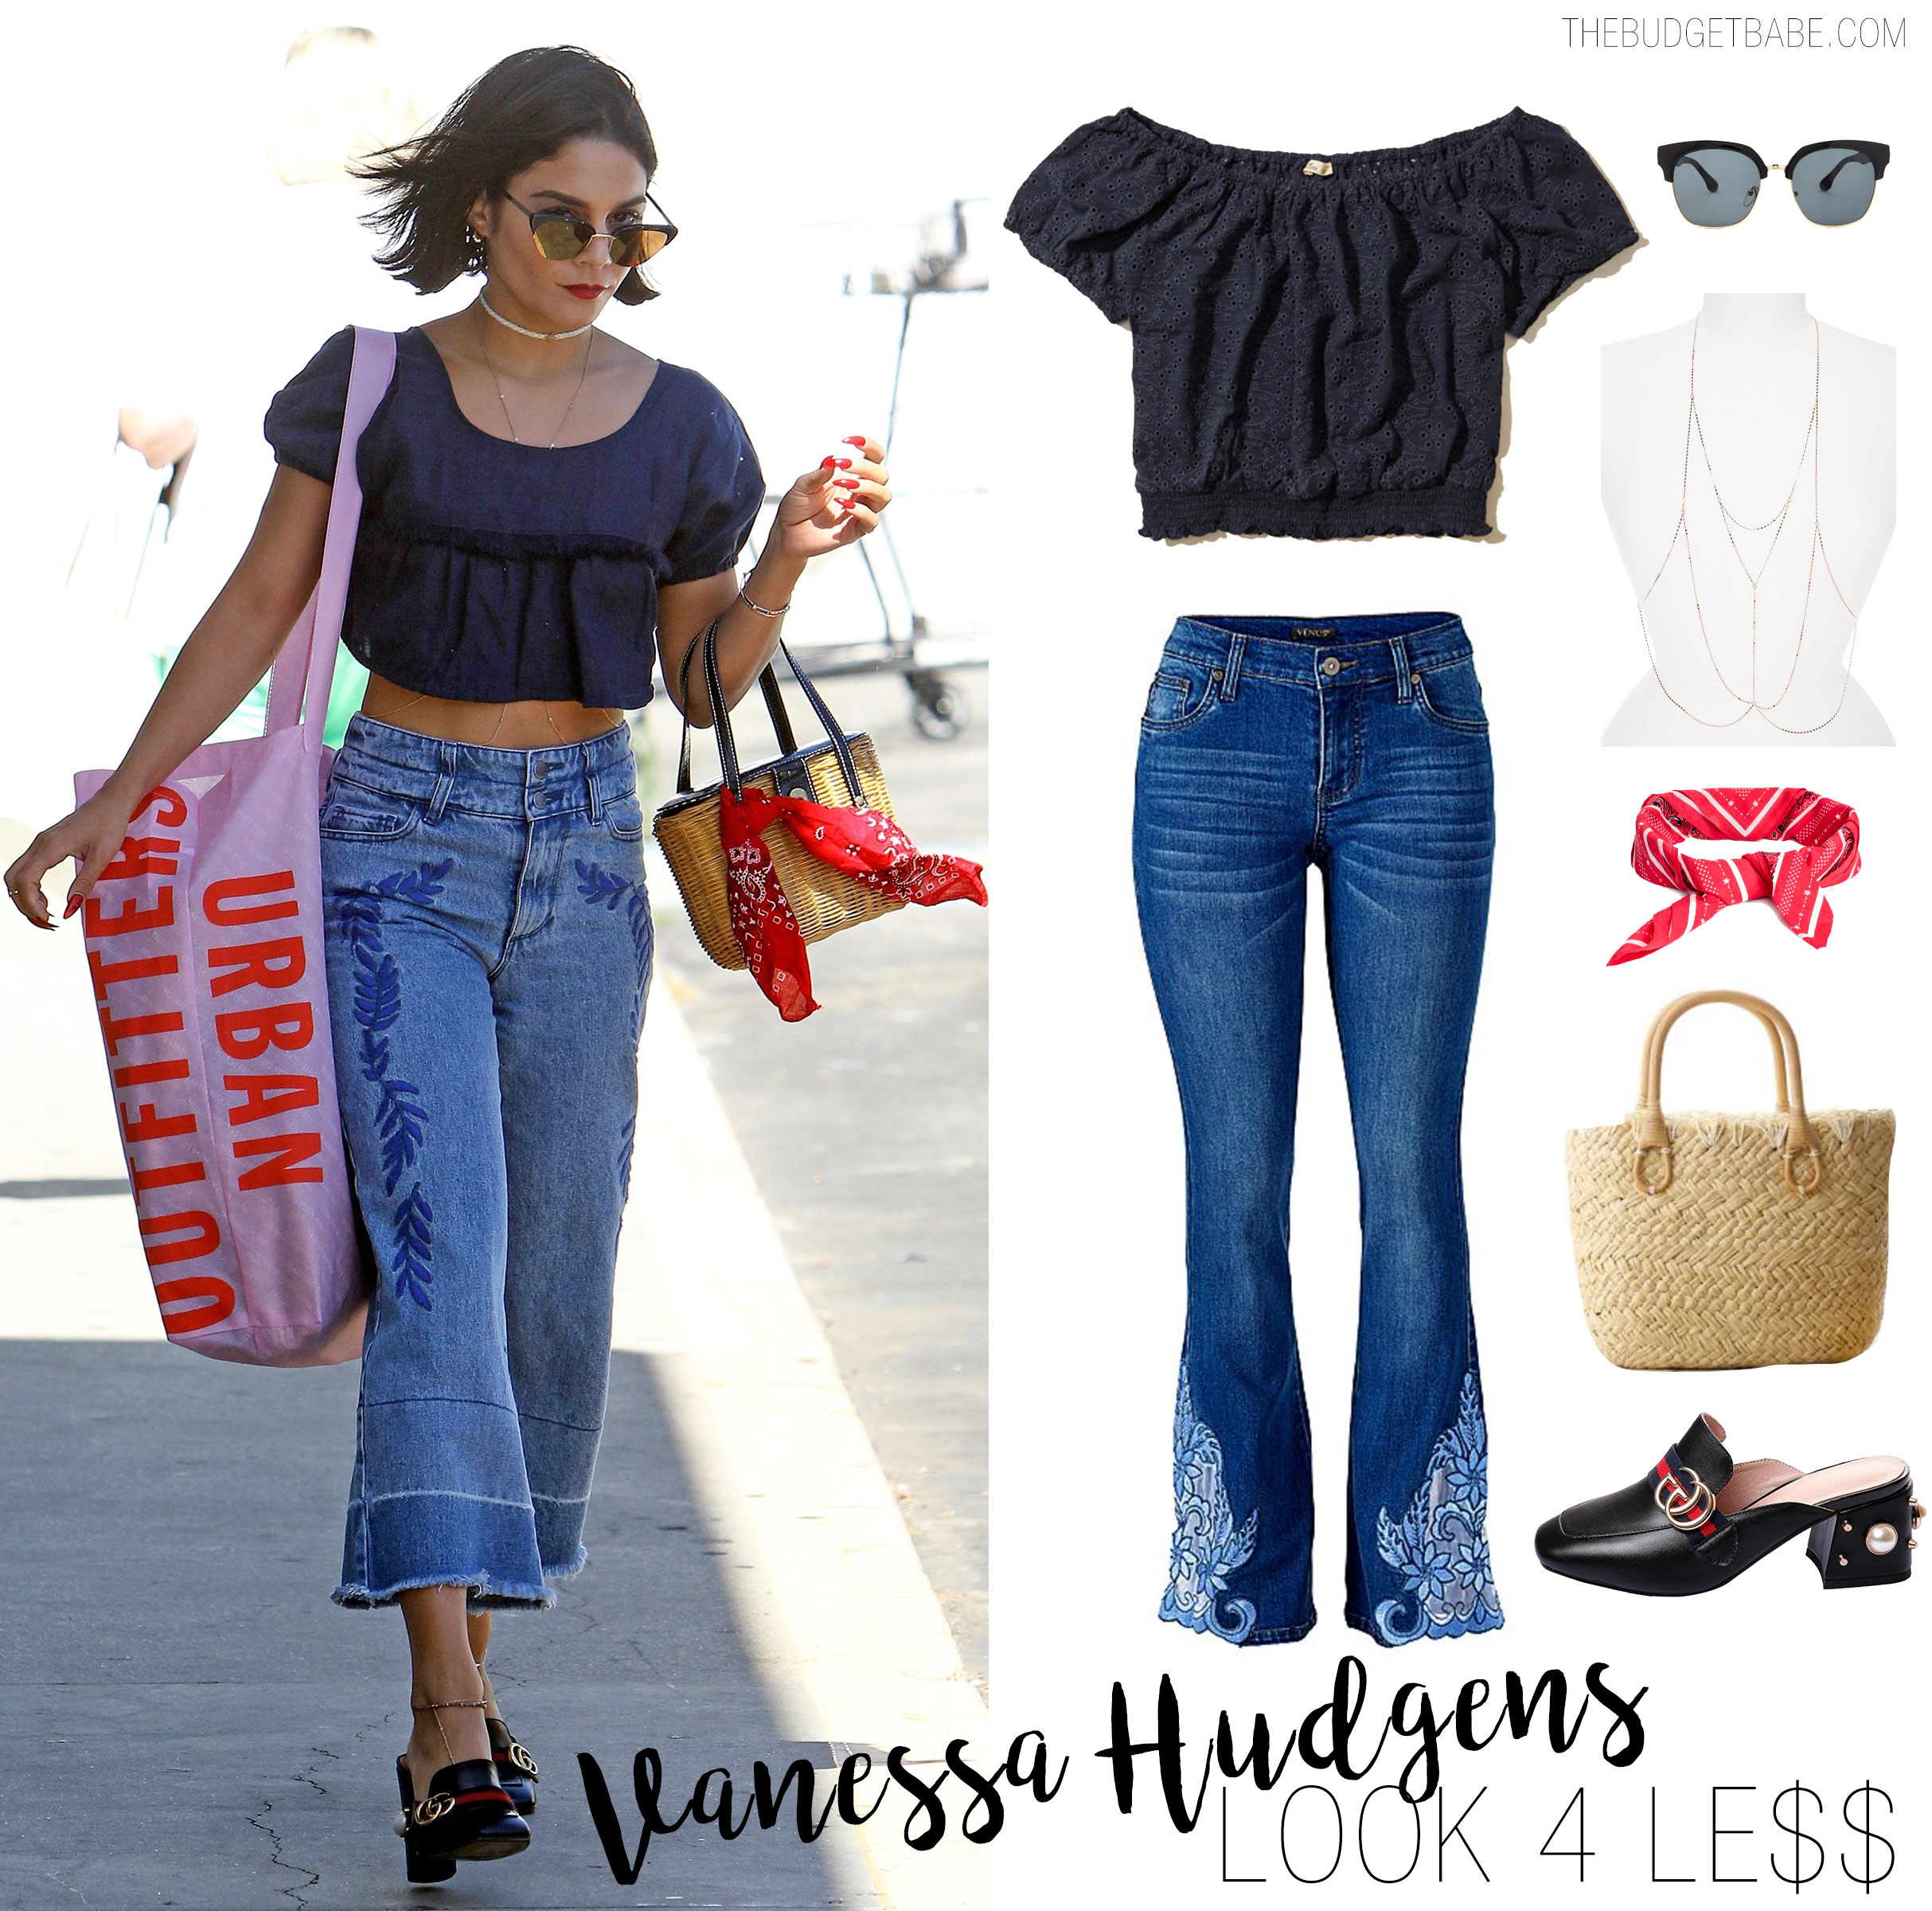 Vanessa Hudgens' shops at Urban Outfitters in a crop top and embroidered flare leg crop jeans.